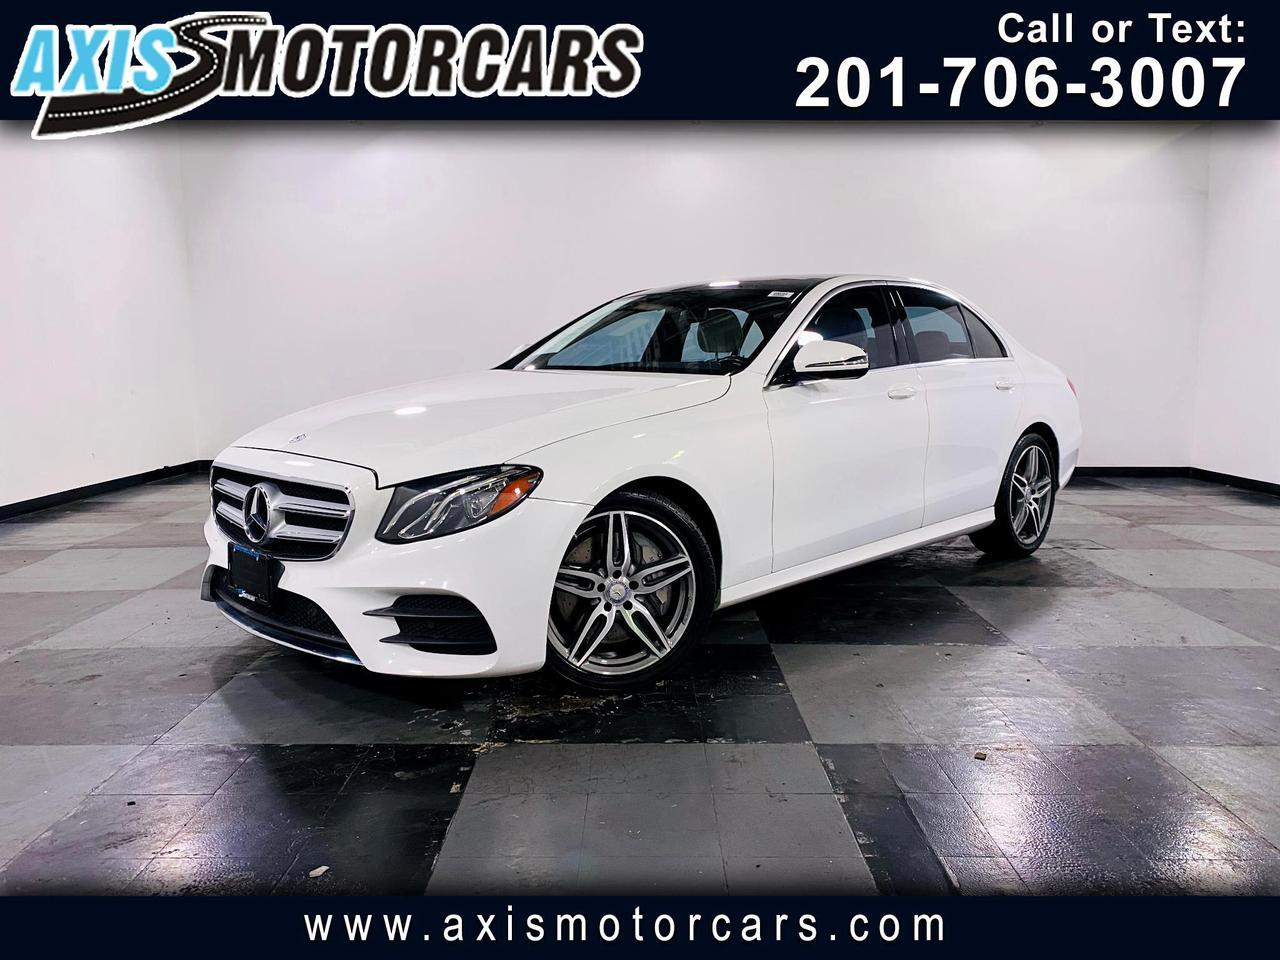 2017 Mercedes-Benz E300 4MATIC w/Panoramic Roof Navigation Jersey City NJ